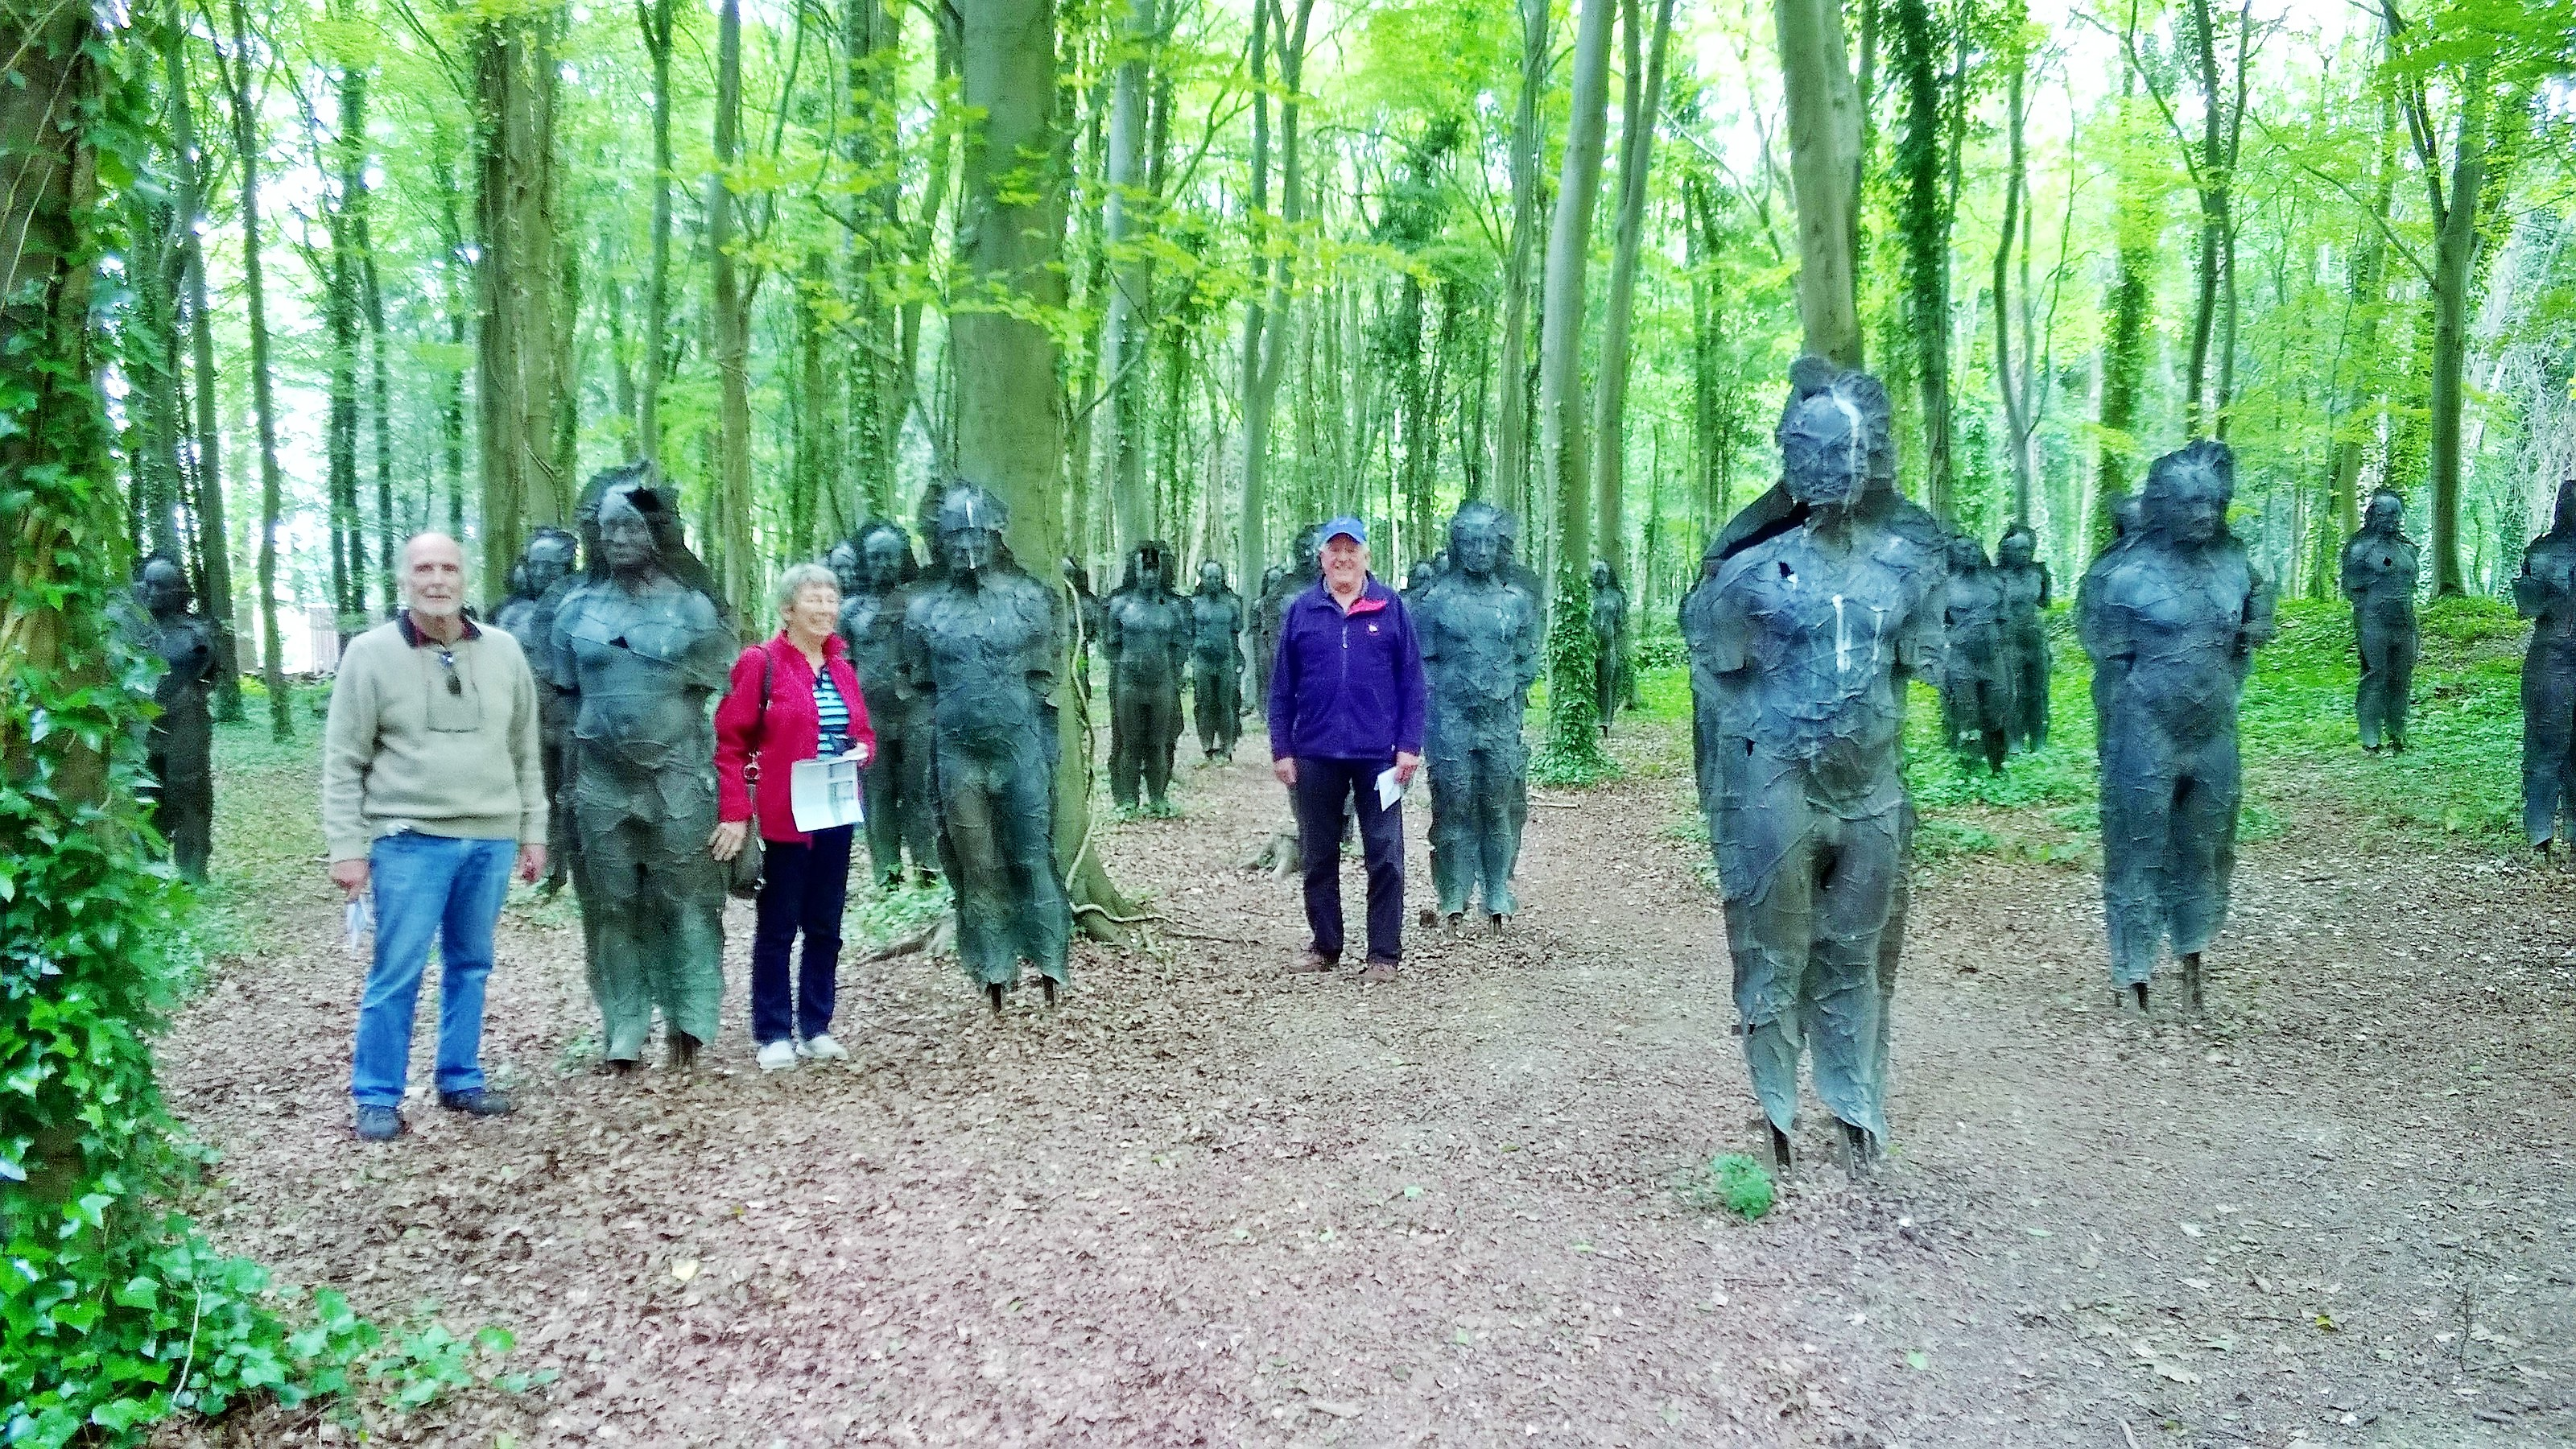 Cass Sculpture Park